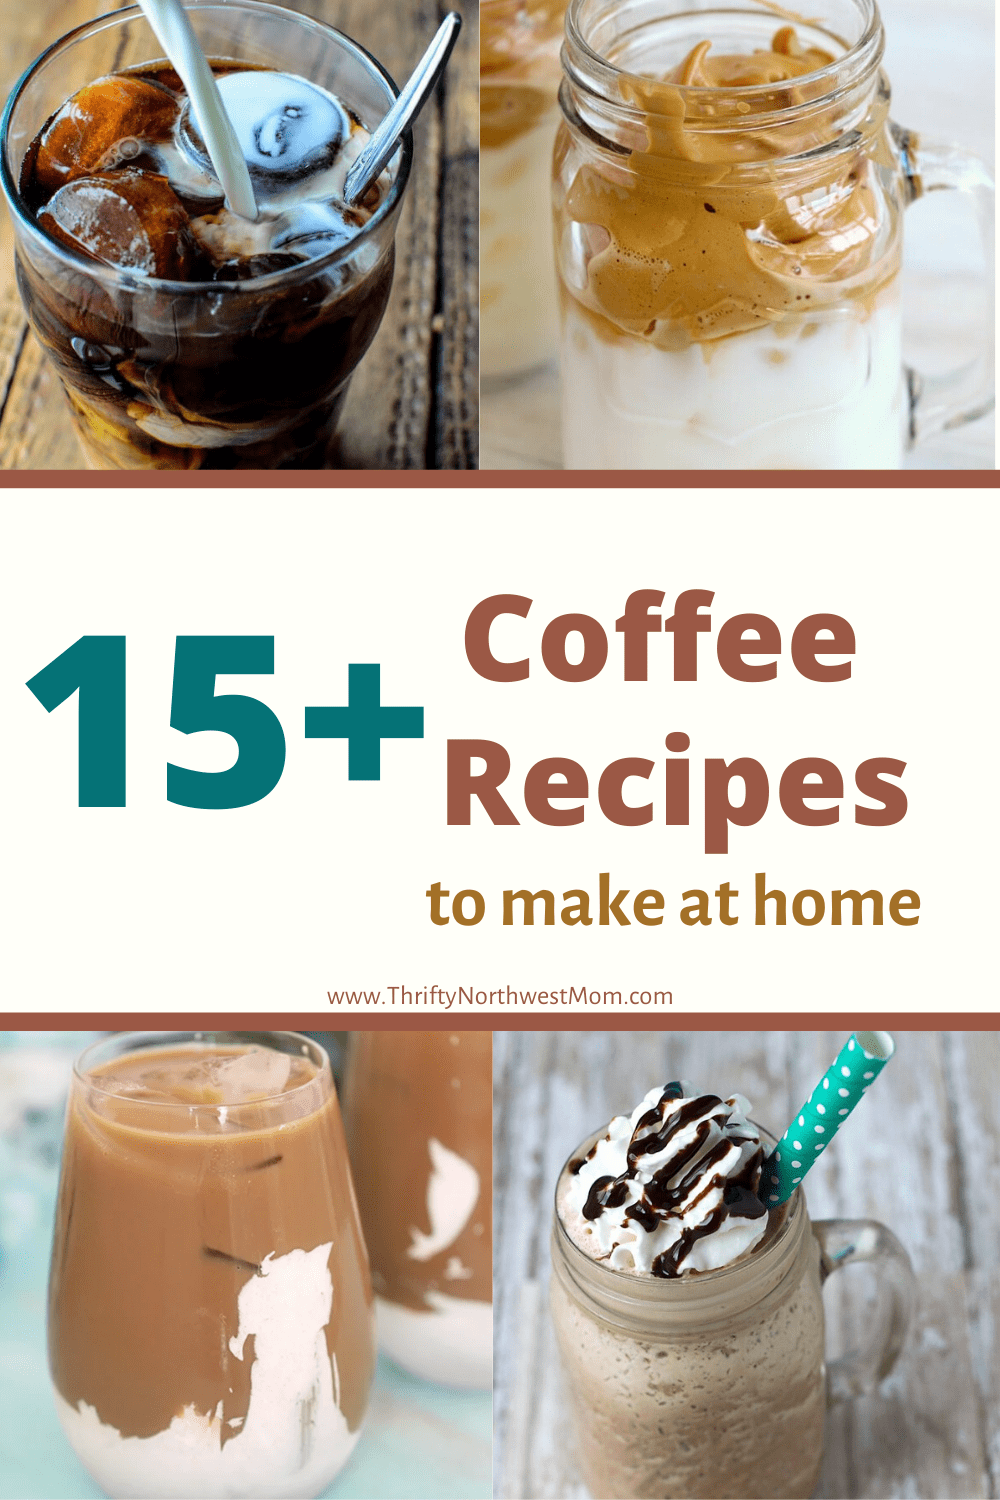 15+ Coffee Recipes to Make at Home